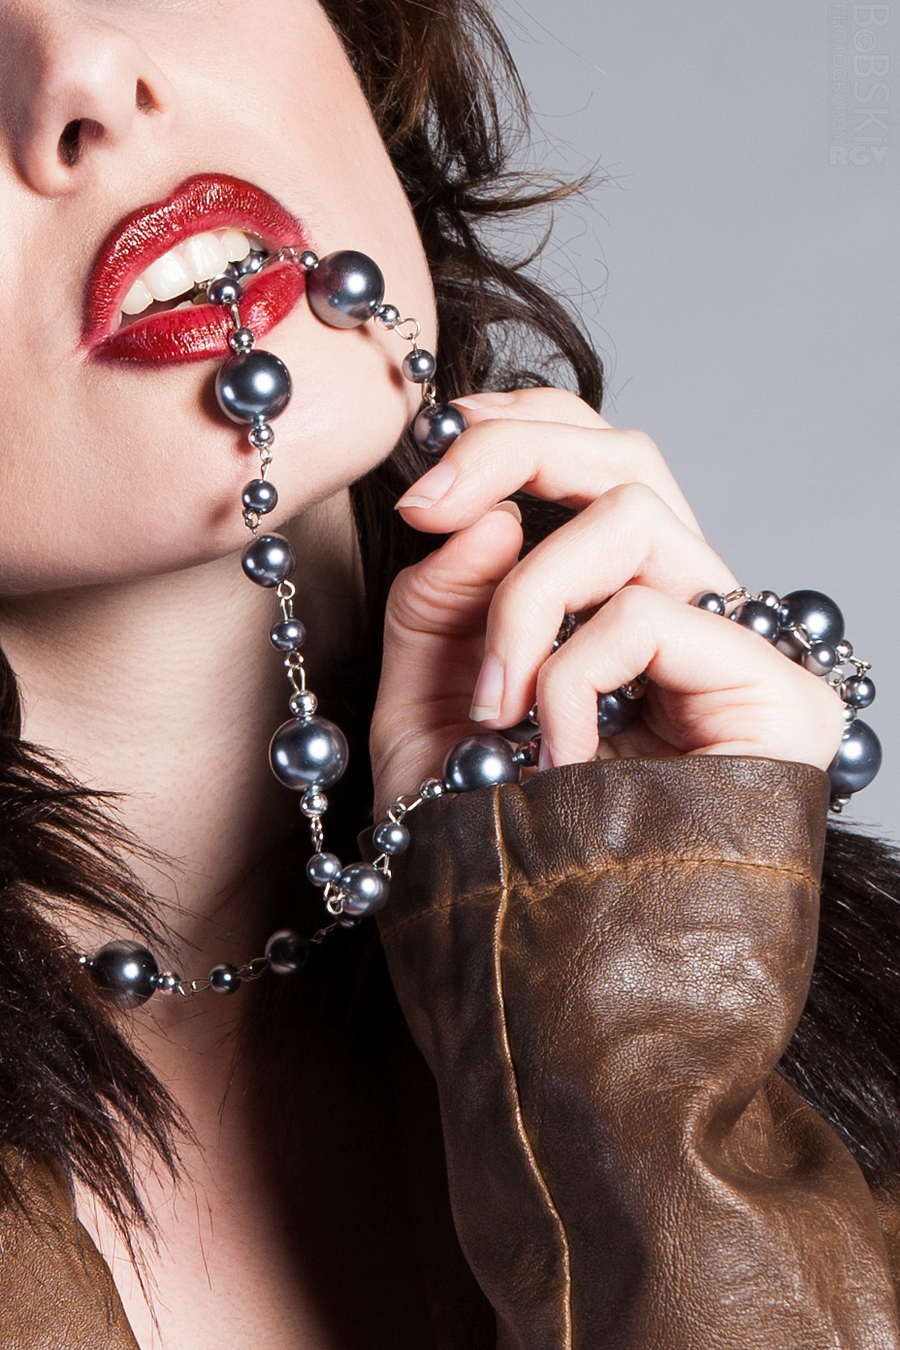 Leather, Lips and the Black Pearls / Photography by BobskiRGV, Post processing by BobskiRGV, Stylist BobskiRGV, Taken at Pathway Studios / Uploaded 12th July 2015 @ 01:34 AM